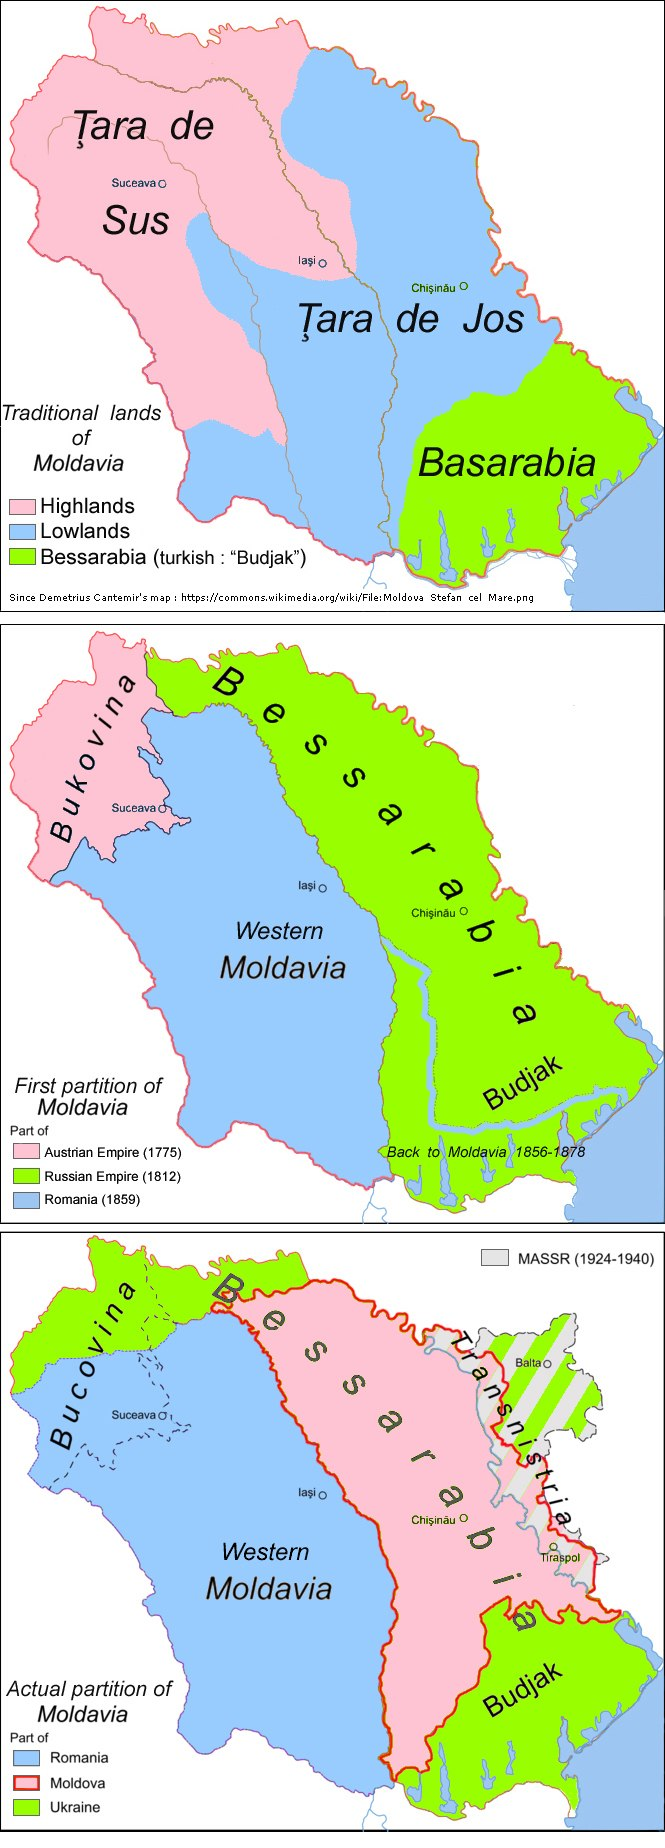 Partitions of Moldavia